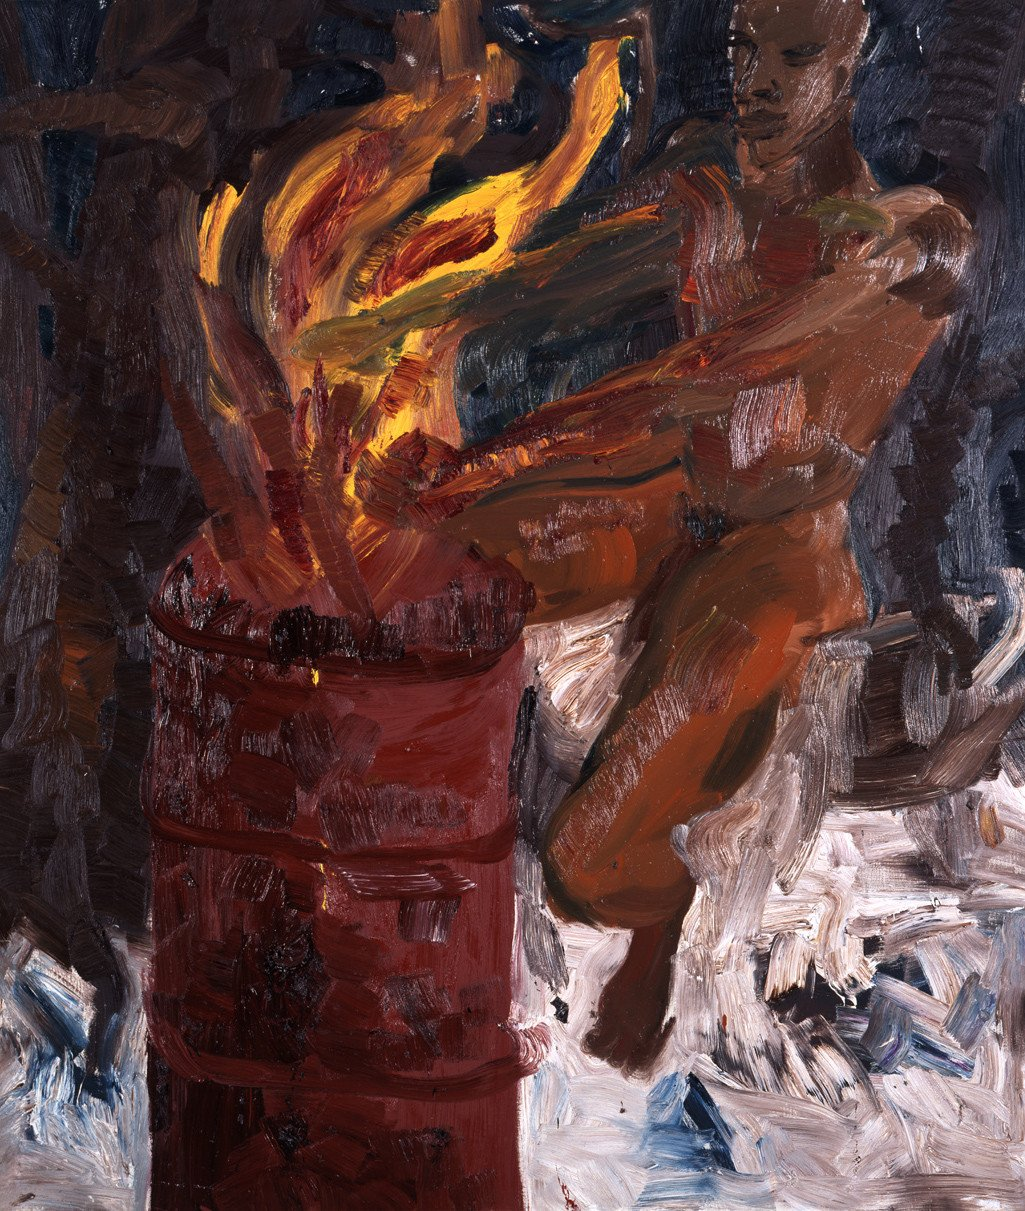 Rainer Fetting · Man and Fire